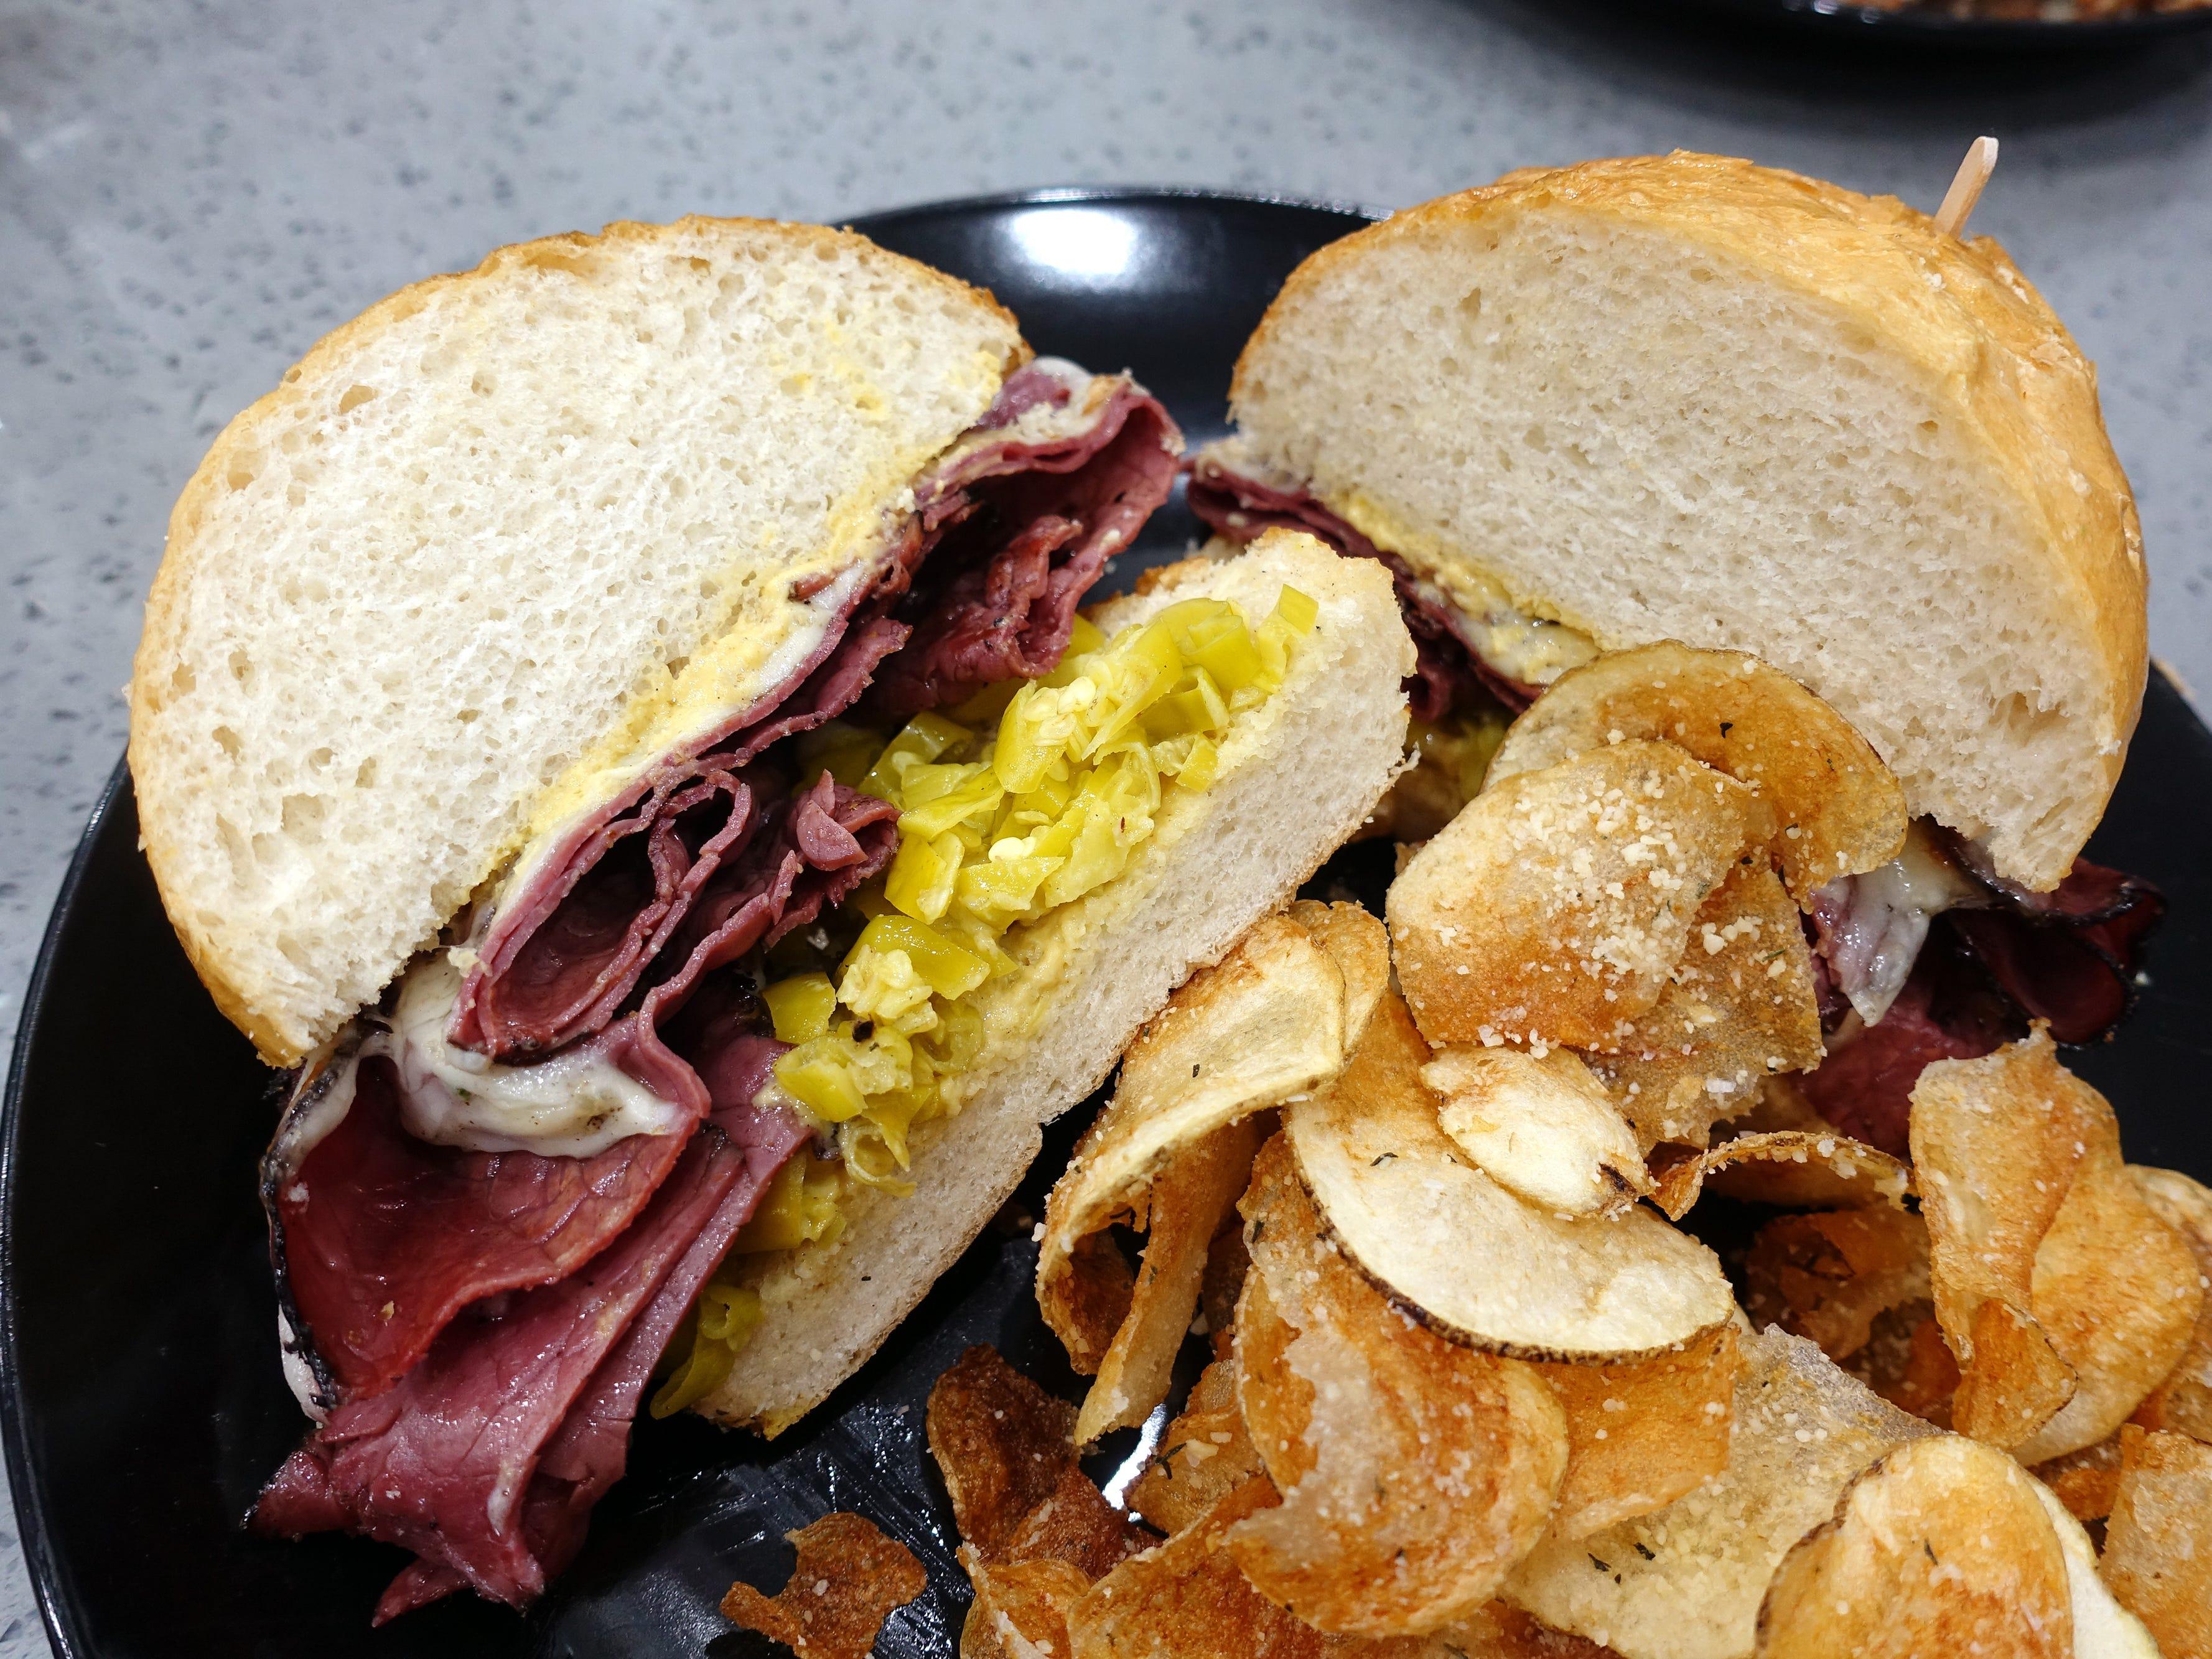 Hot pastrami sandwich with melted provolone, pepperoncini and spicy mustard at Sweetest Season Artisan Eatery in Tempe.